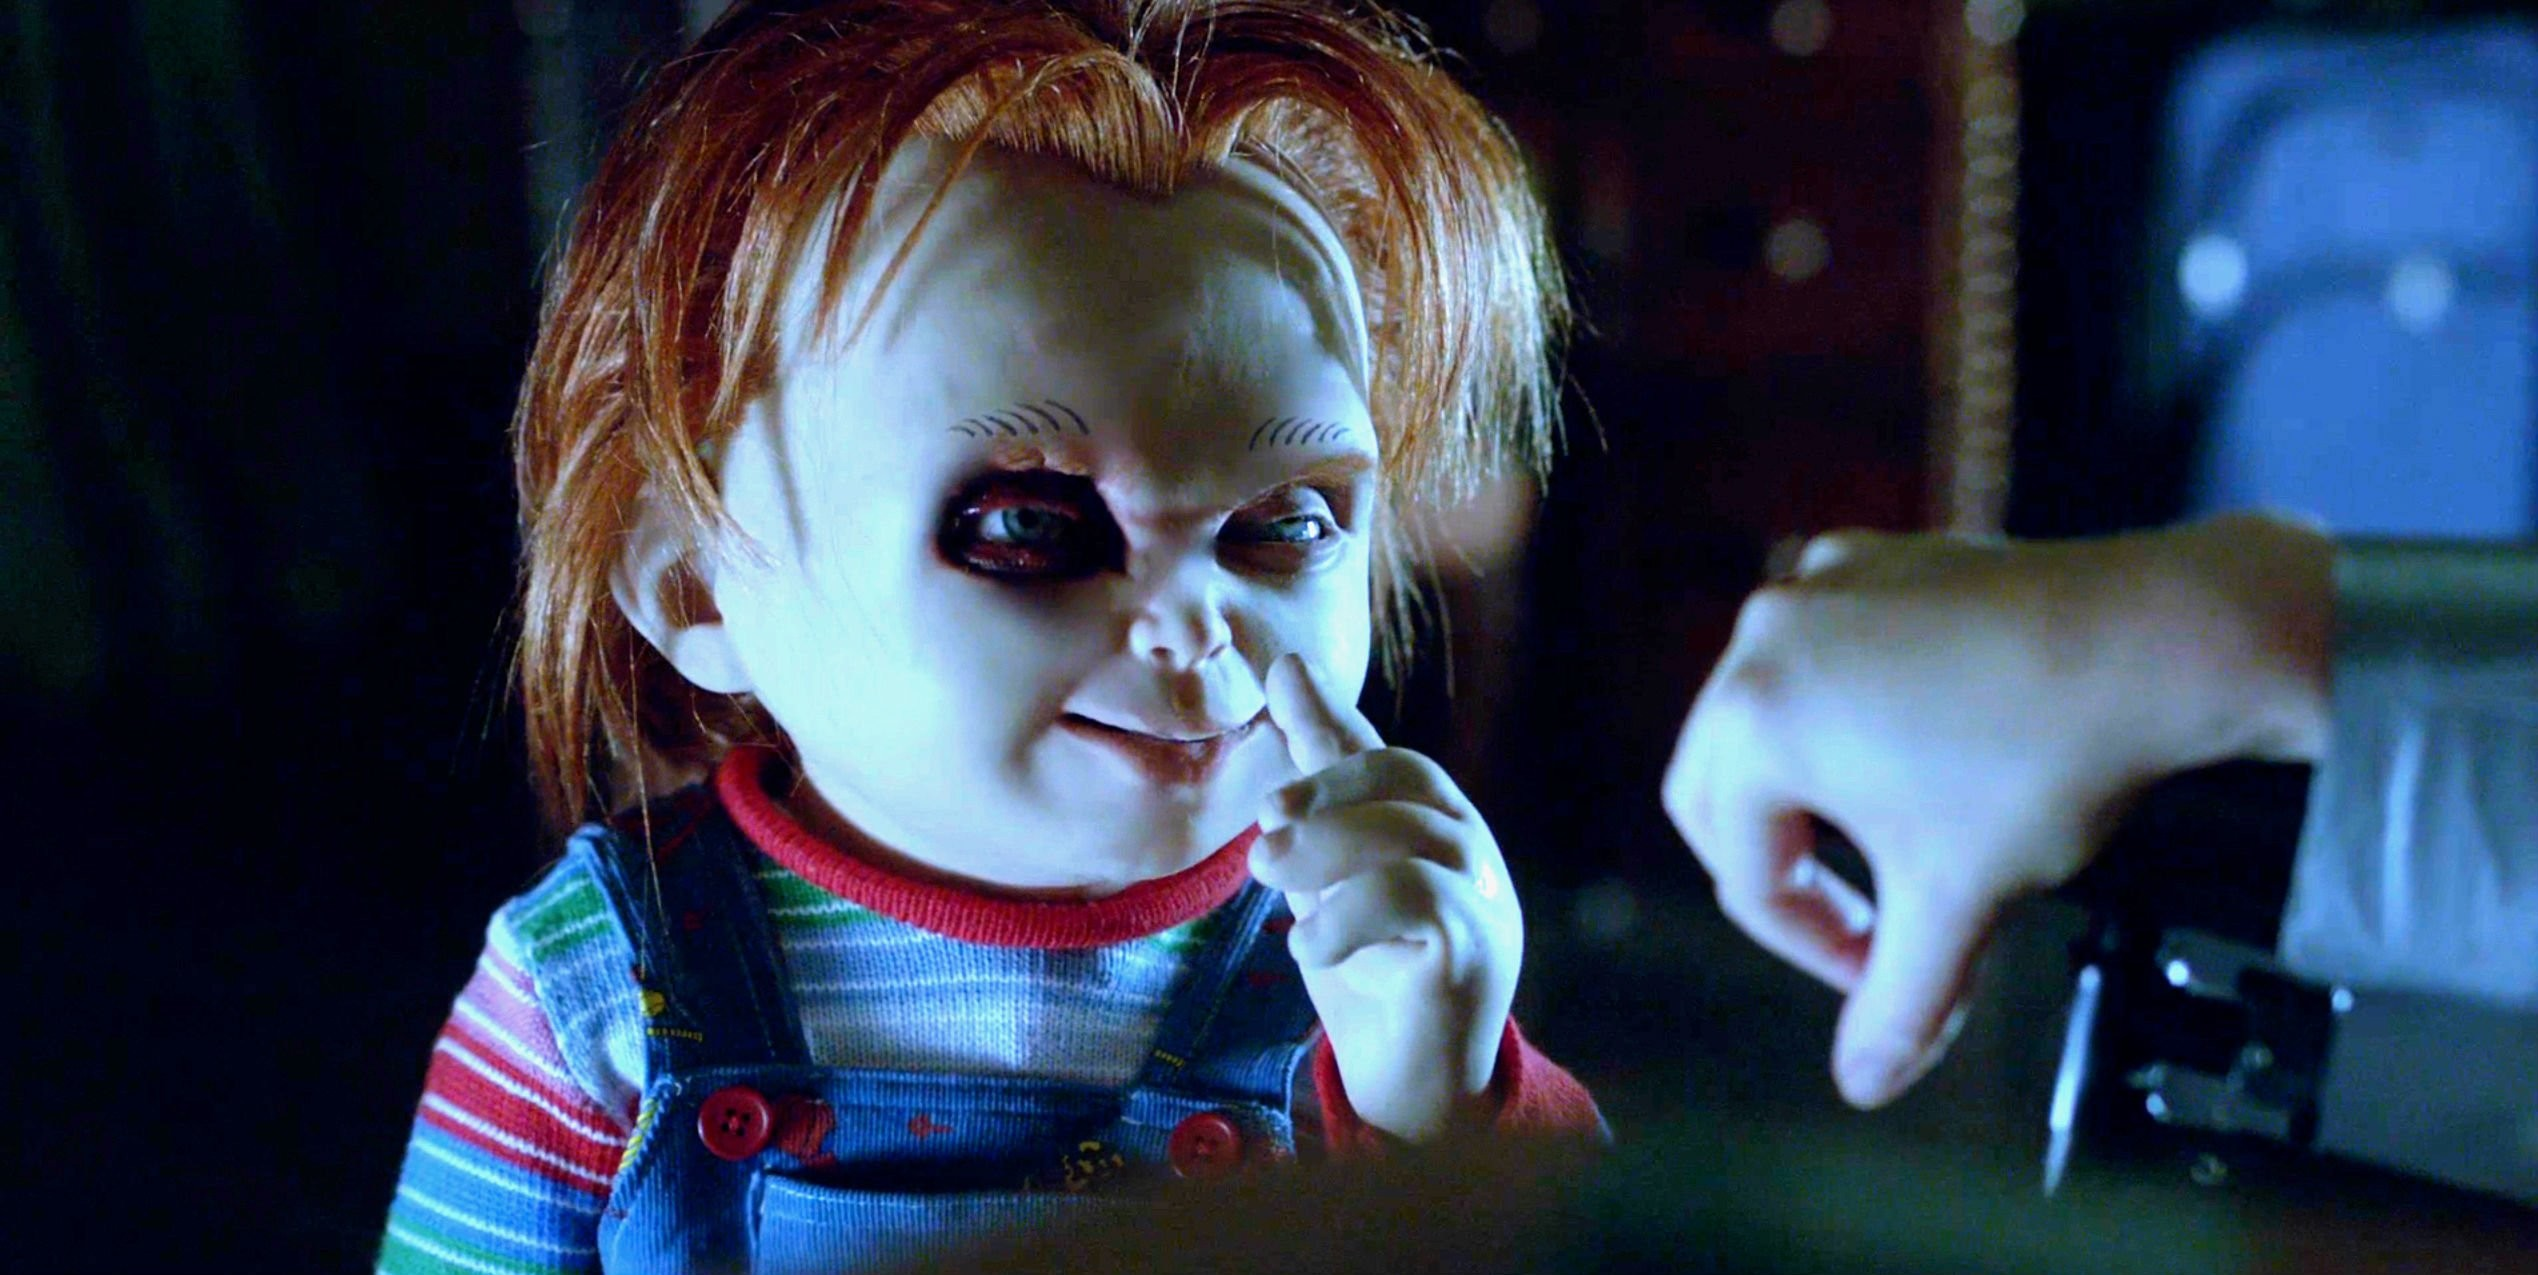 2538x1275 CHILDS PLAY chucky dark horror creepy scary (19) wallpaper |  |  235520 | WallpaperUP